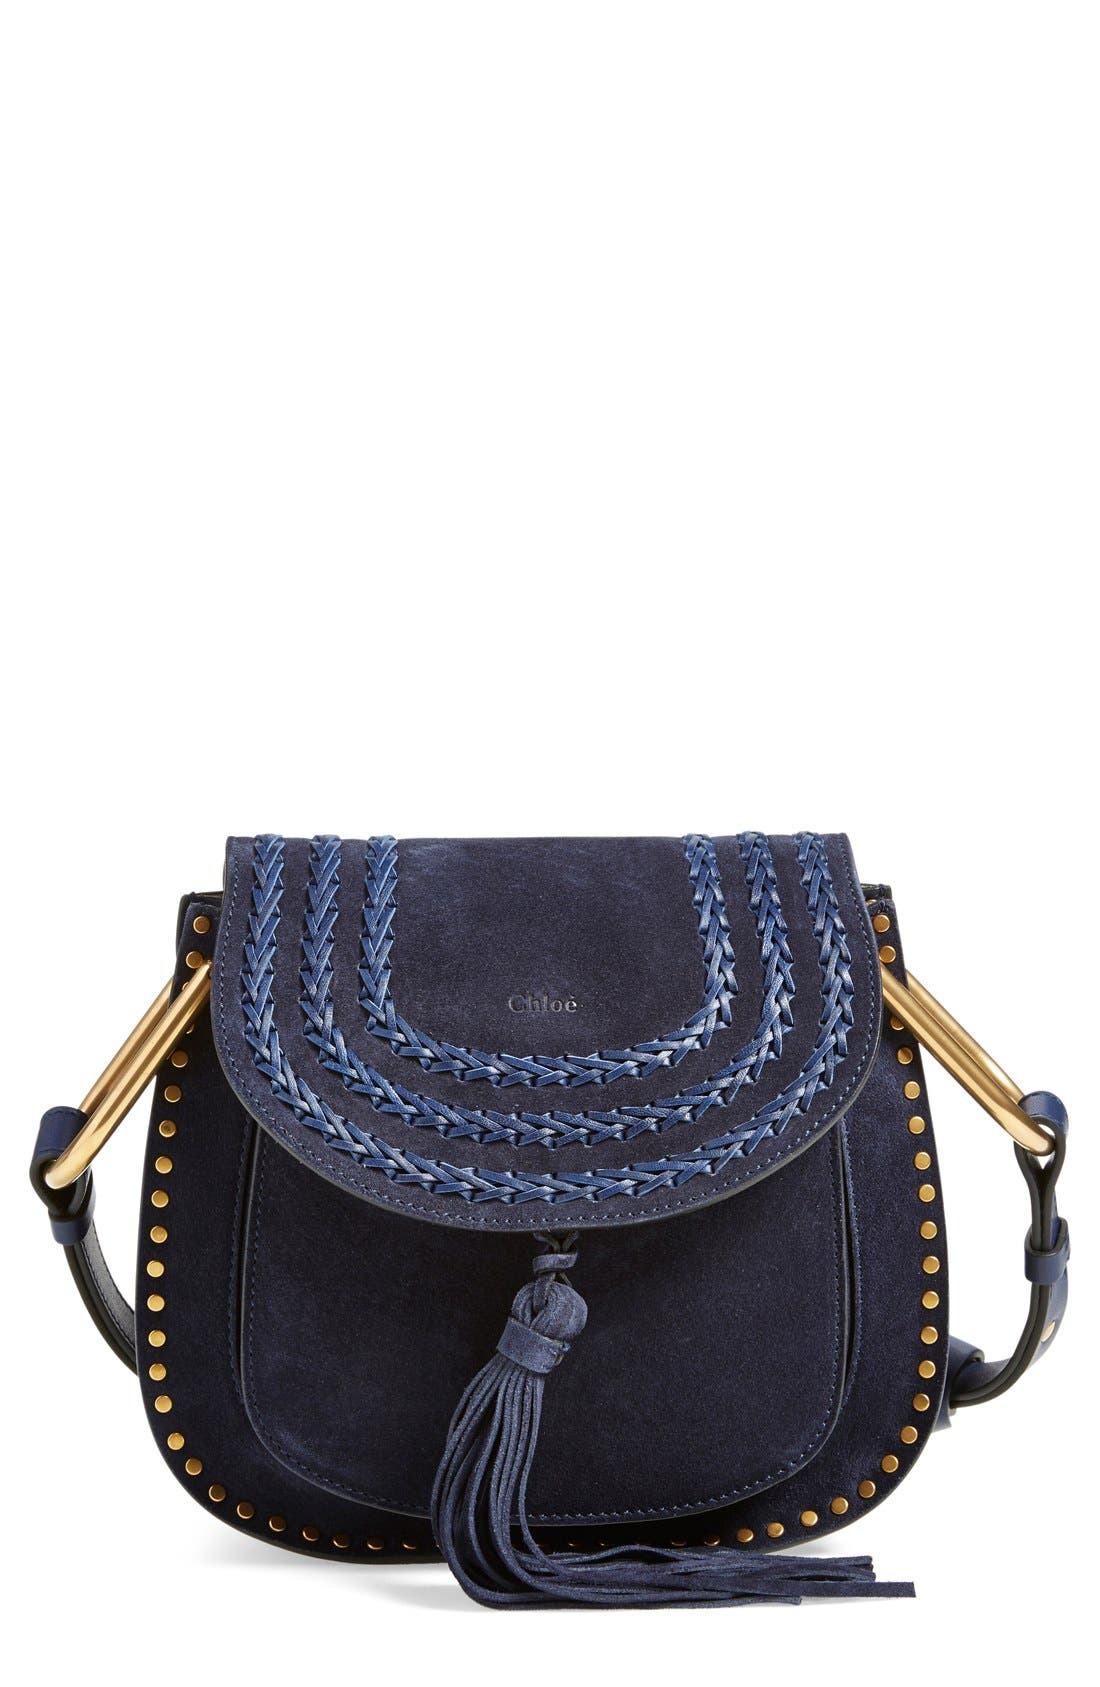 Main Image - Chloé 'Small Hudson' Shoulder Bag